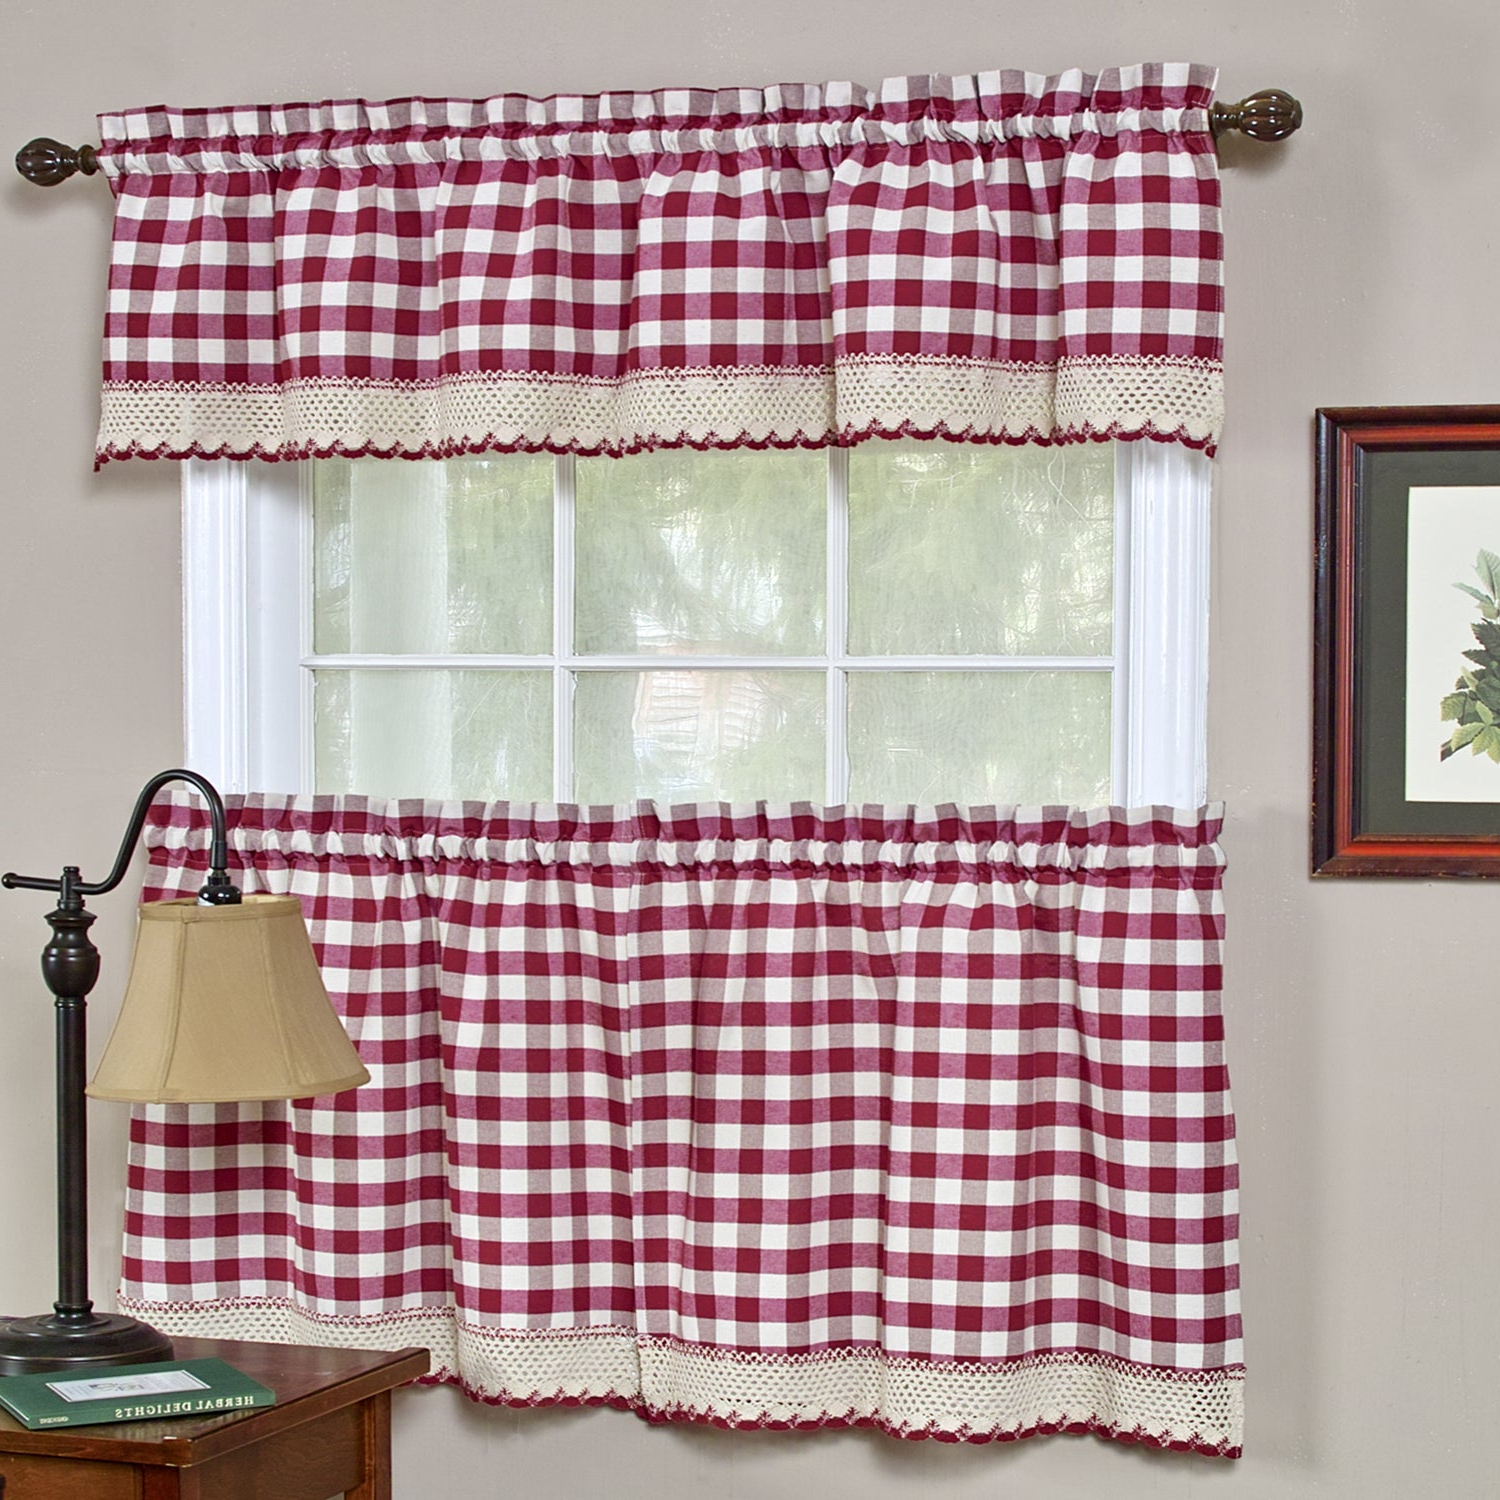 Classic Navy Cotton Blend Buffalo Check Kitchen Curtain Sets Inside Trendy Classic Buffalo Check Kitchen Burgundy/white Curtain Set Or Separates (View 4 of 20)